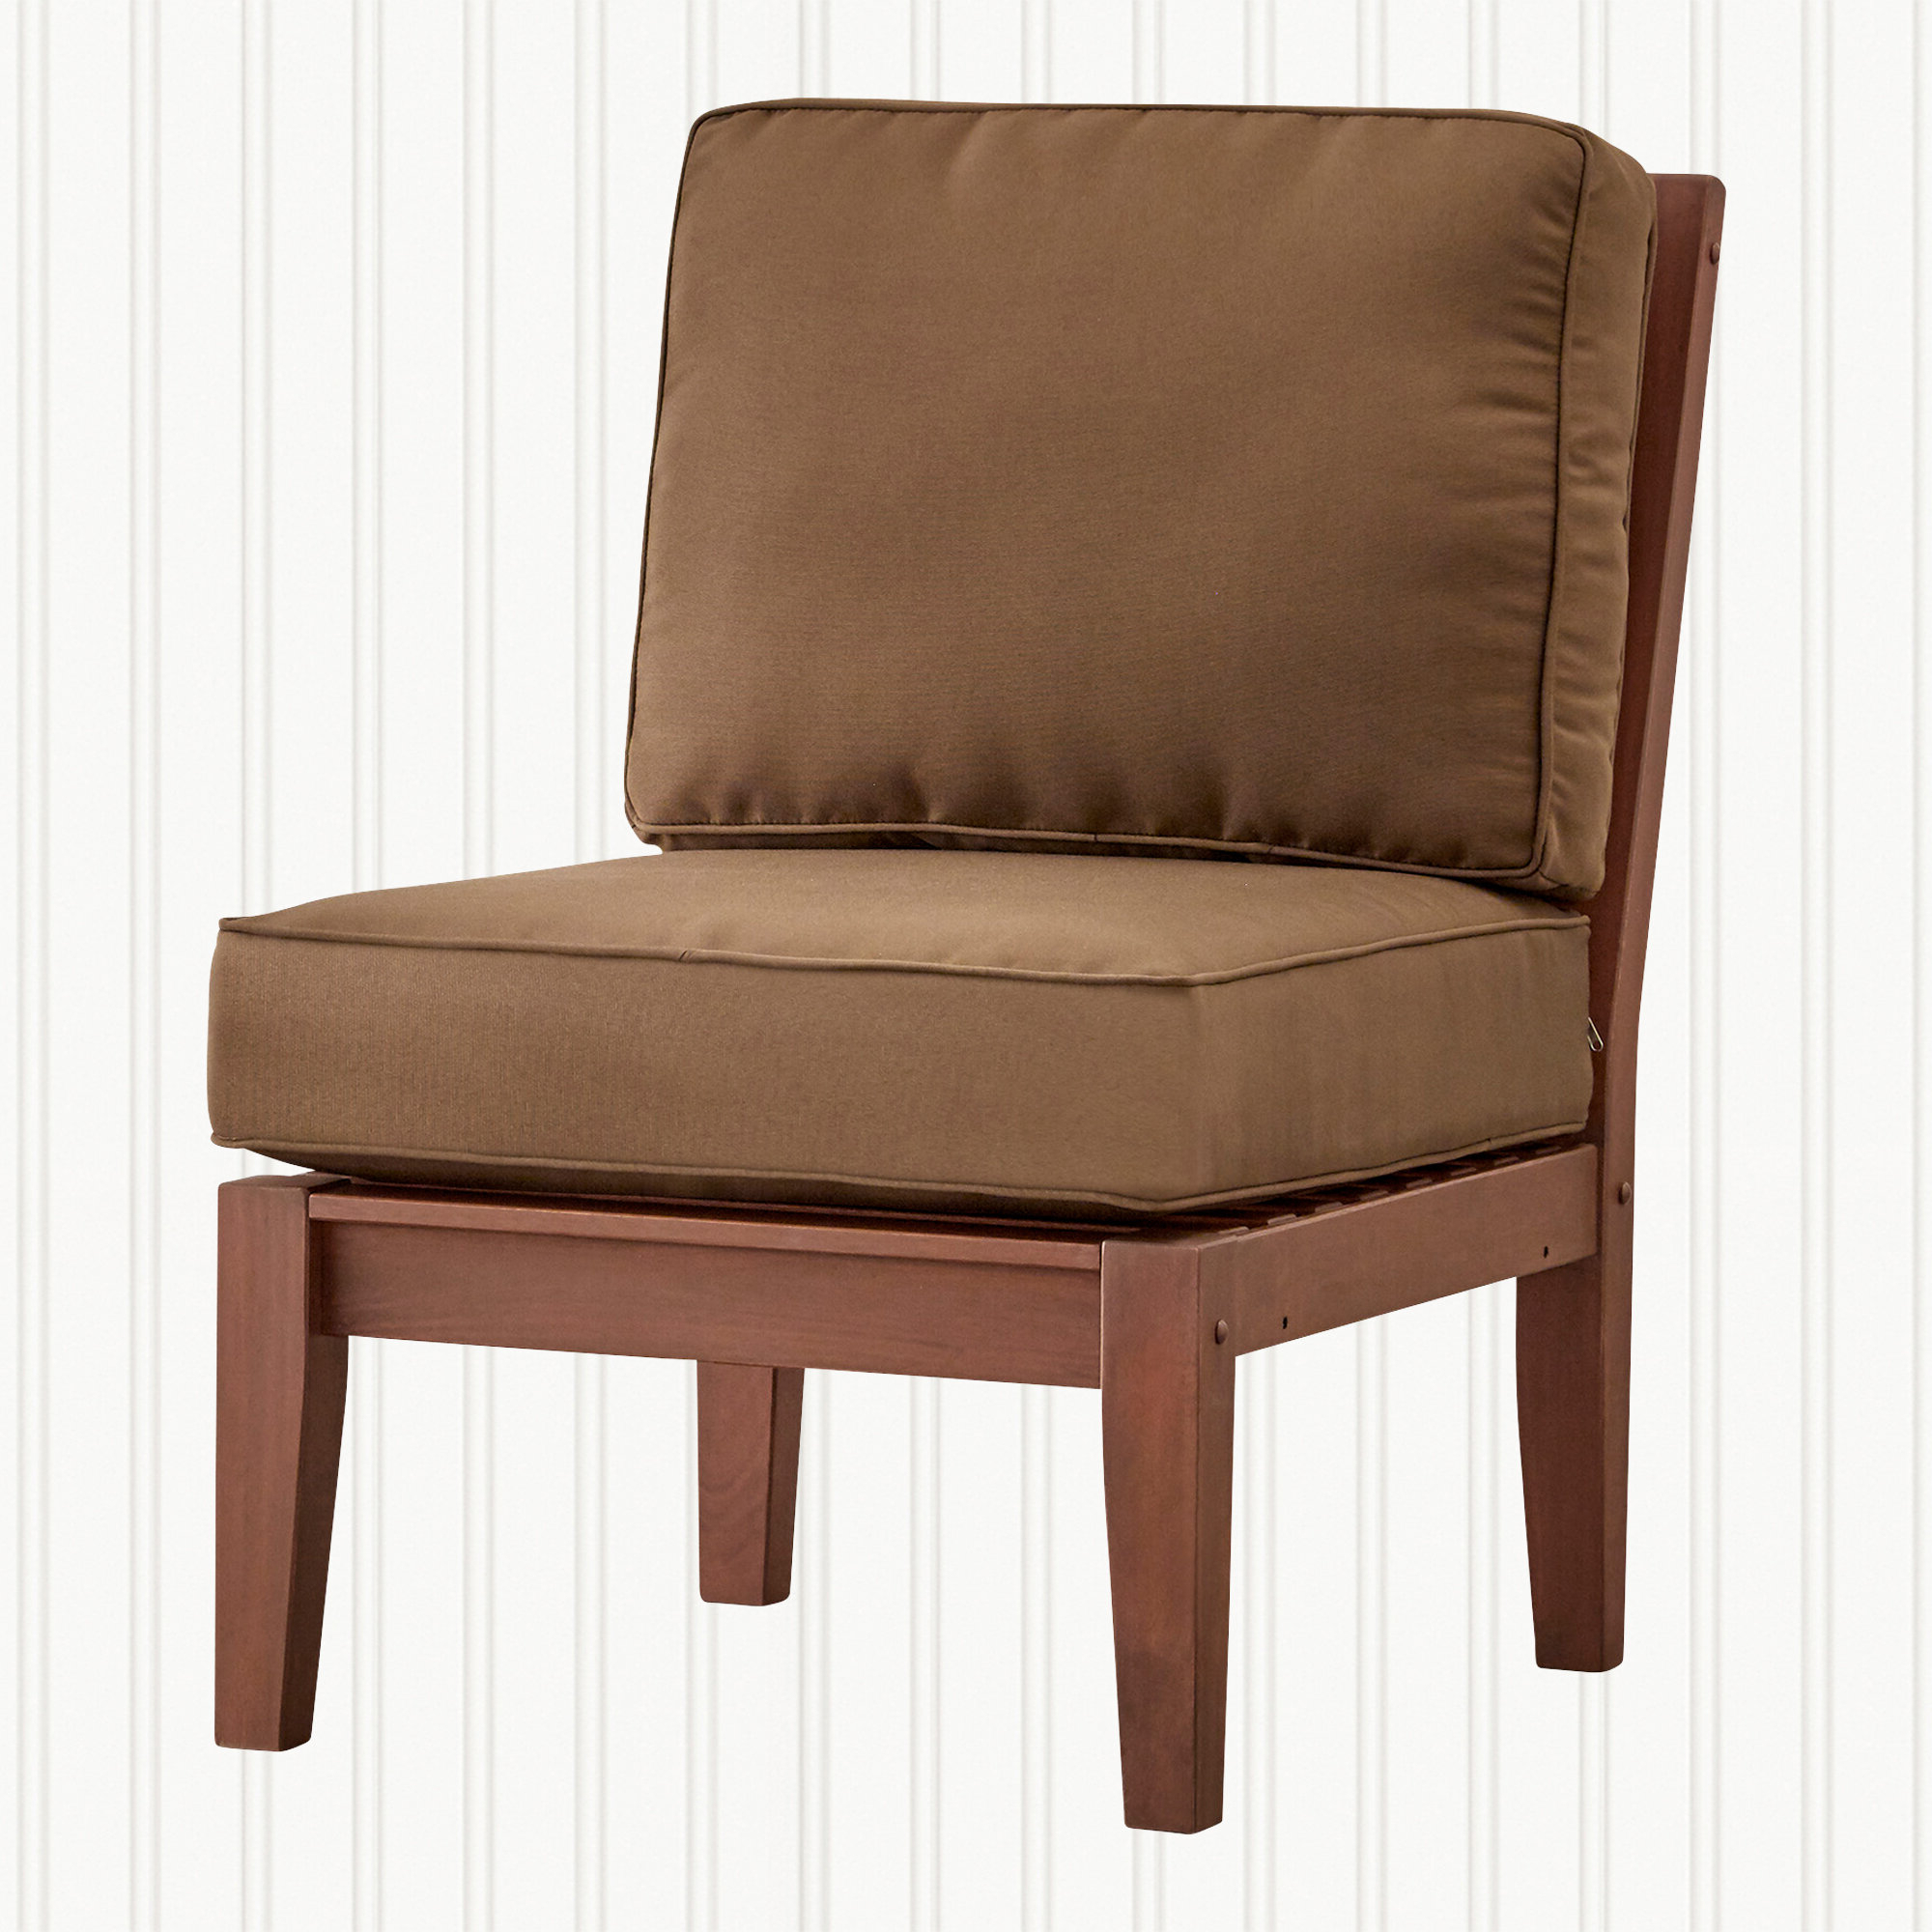 Hursey Armless Chair With Regard To Most Current Hursey Patio Sectionals (View 3 of 20)